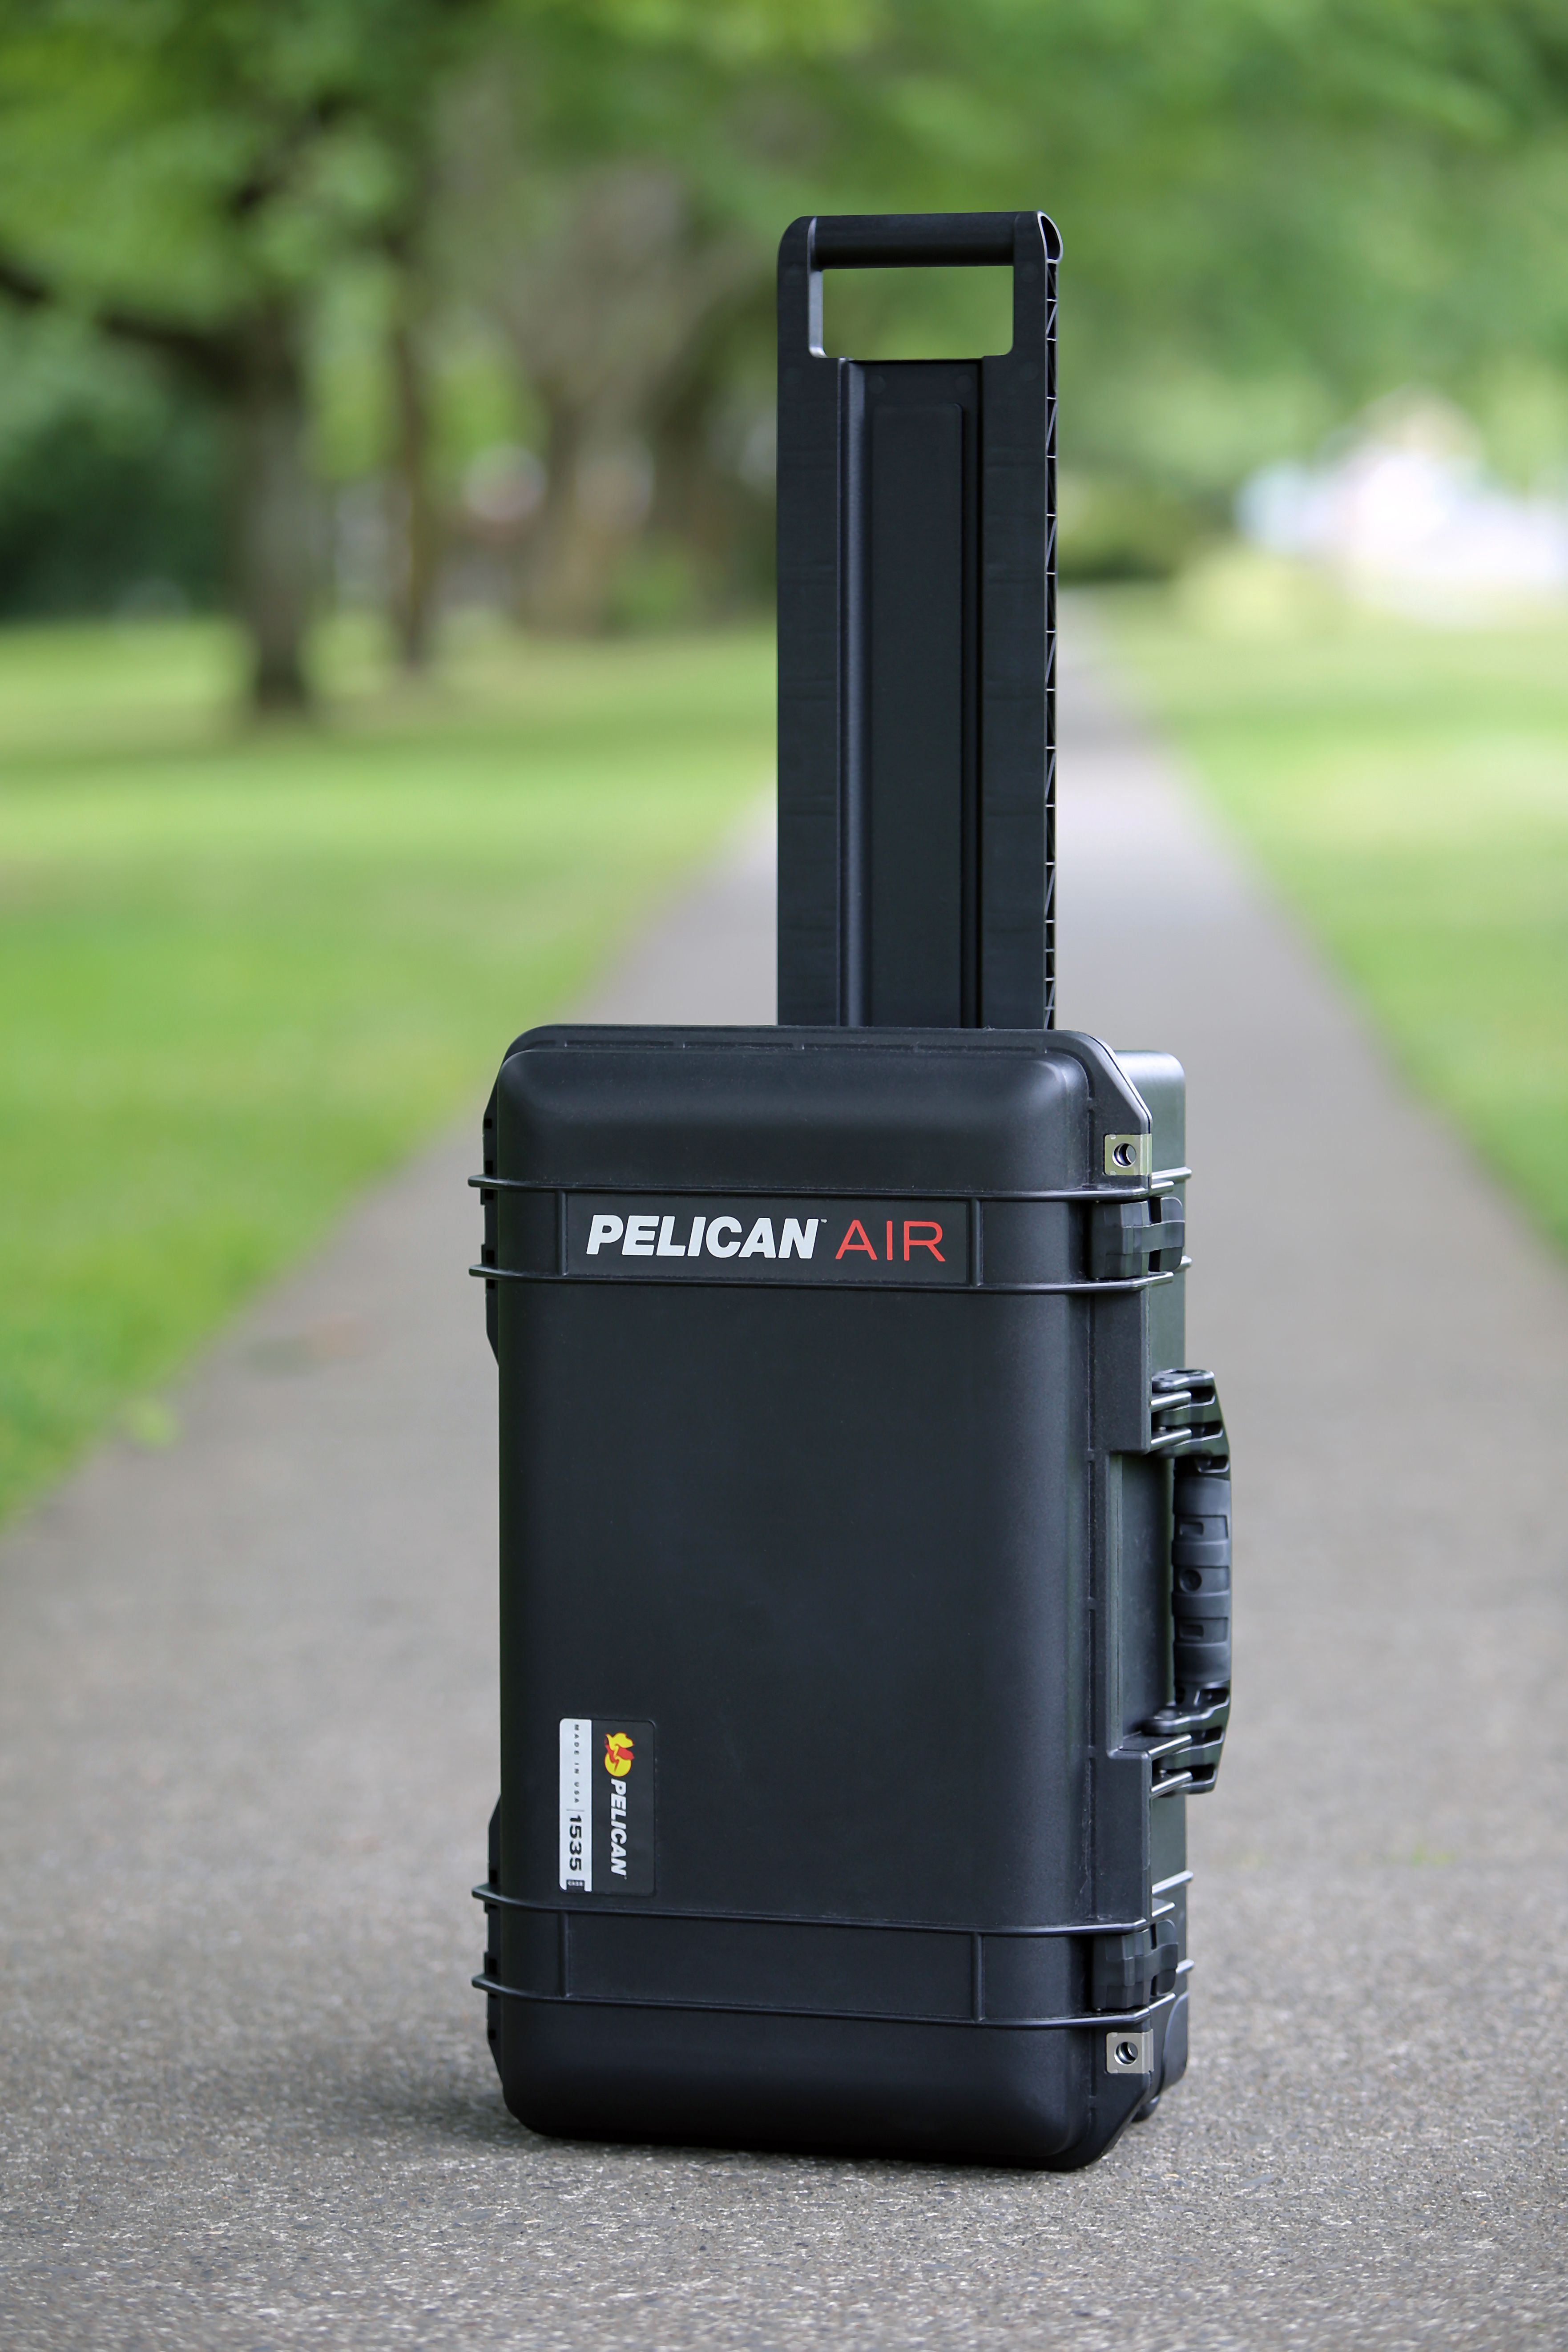 Pelican's new Air gear cases claim to provide all the